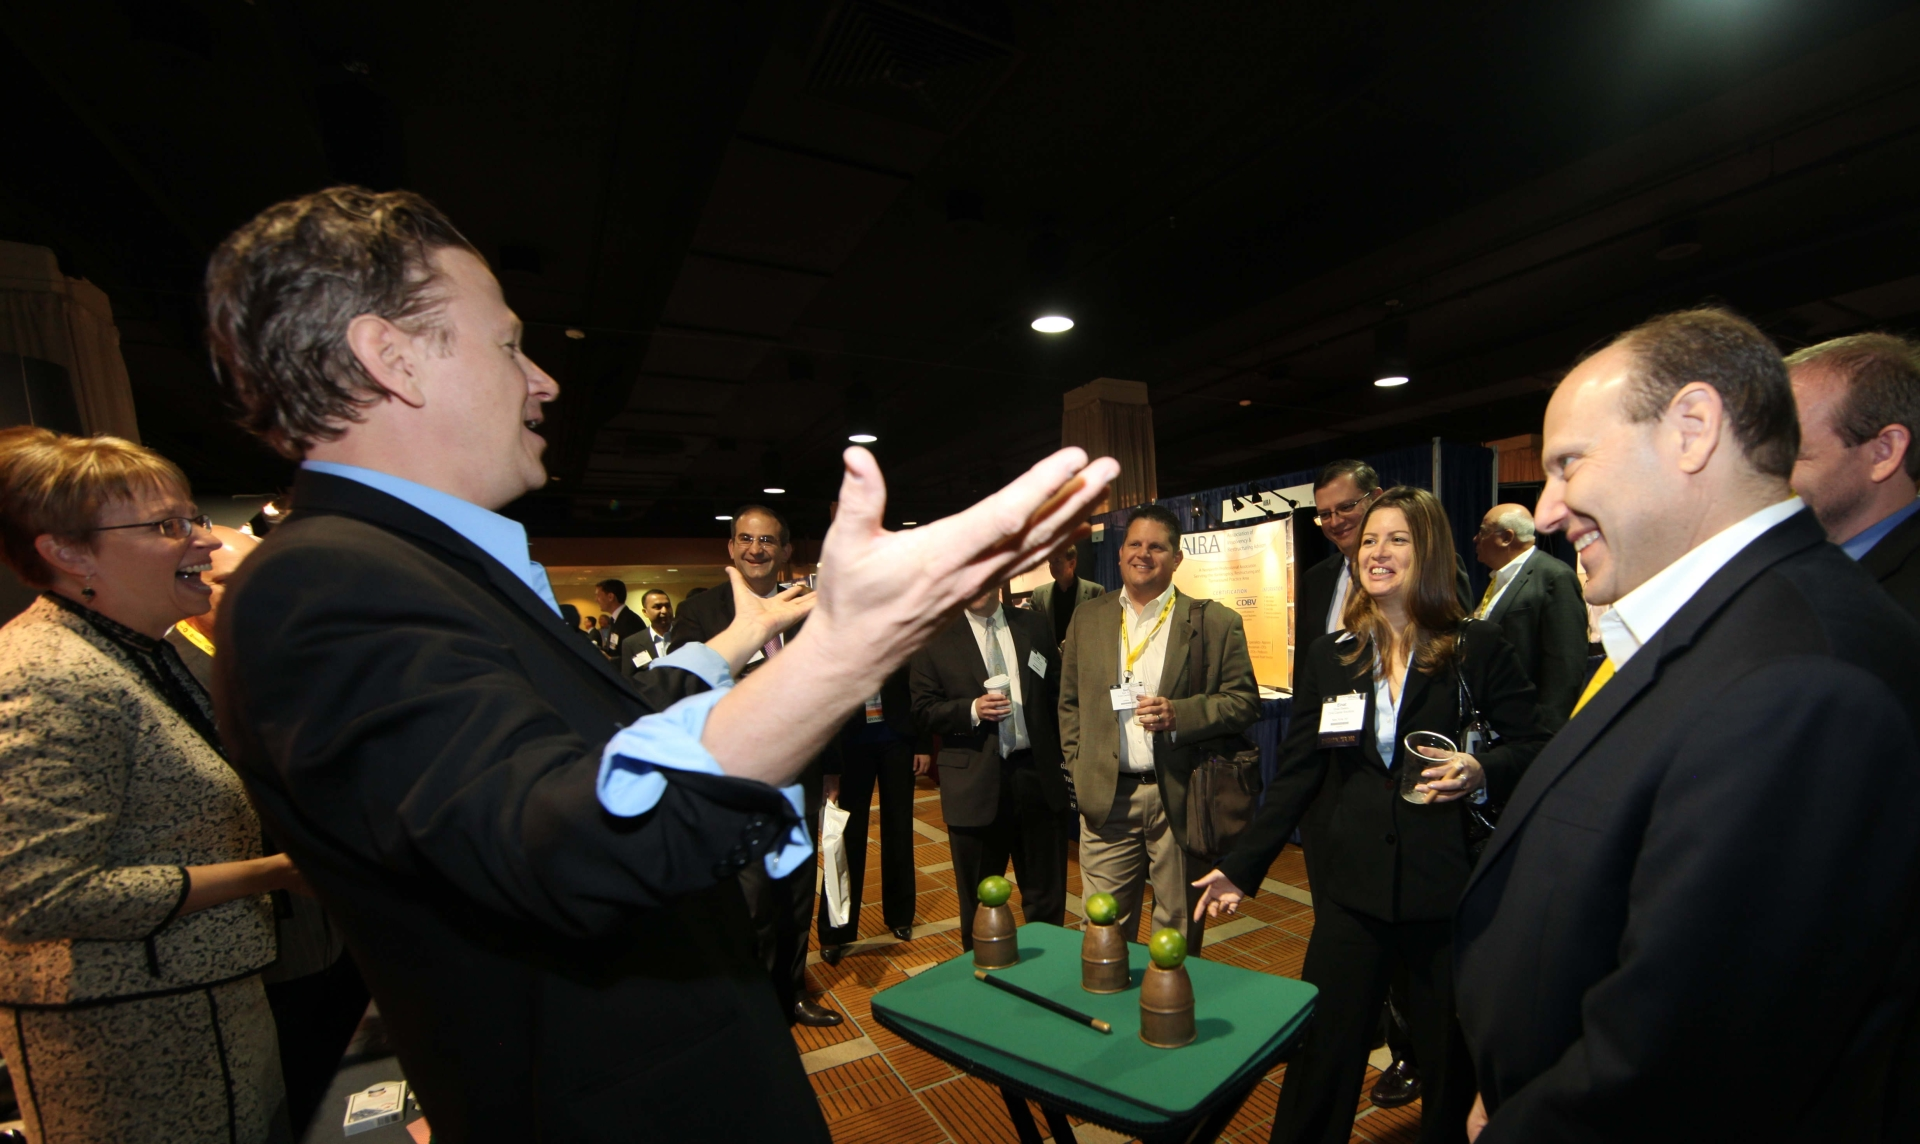 GATHERING HUGE CROWDS AT YOUR TRADE SHOW BOOTH